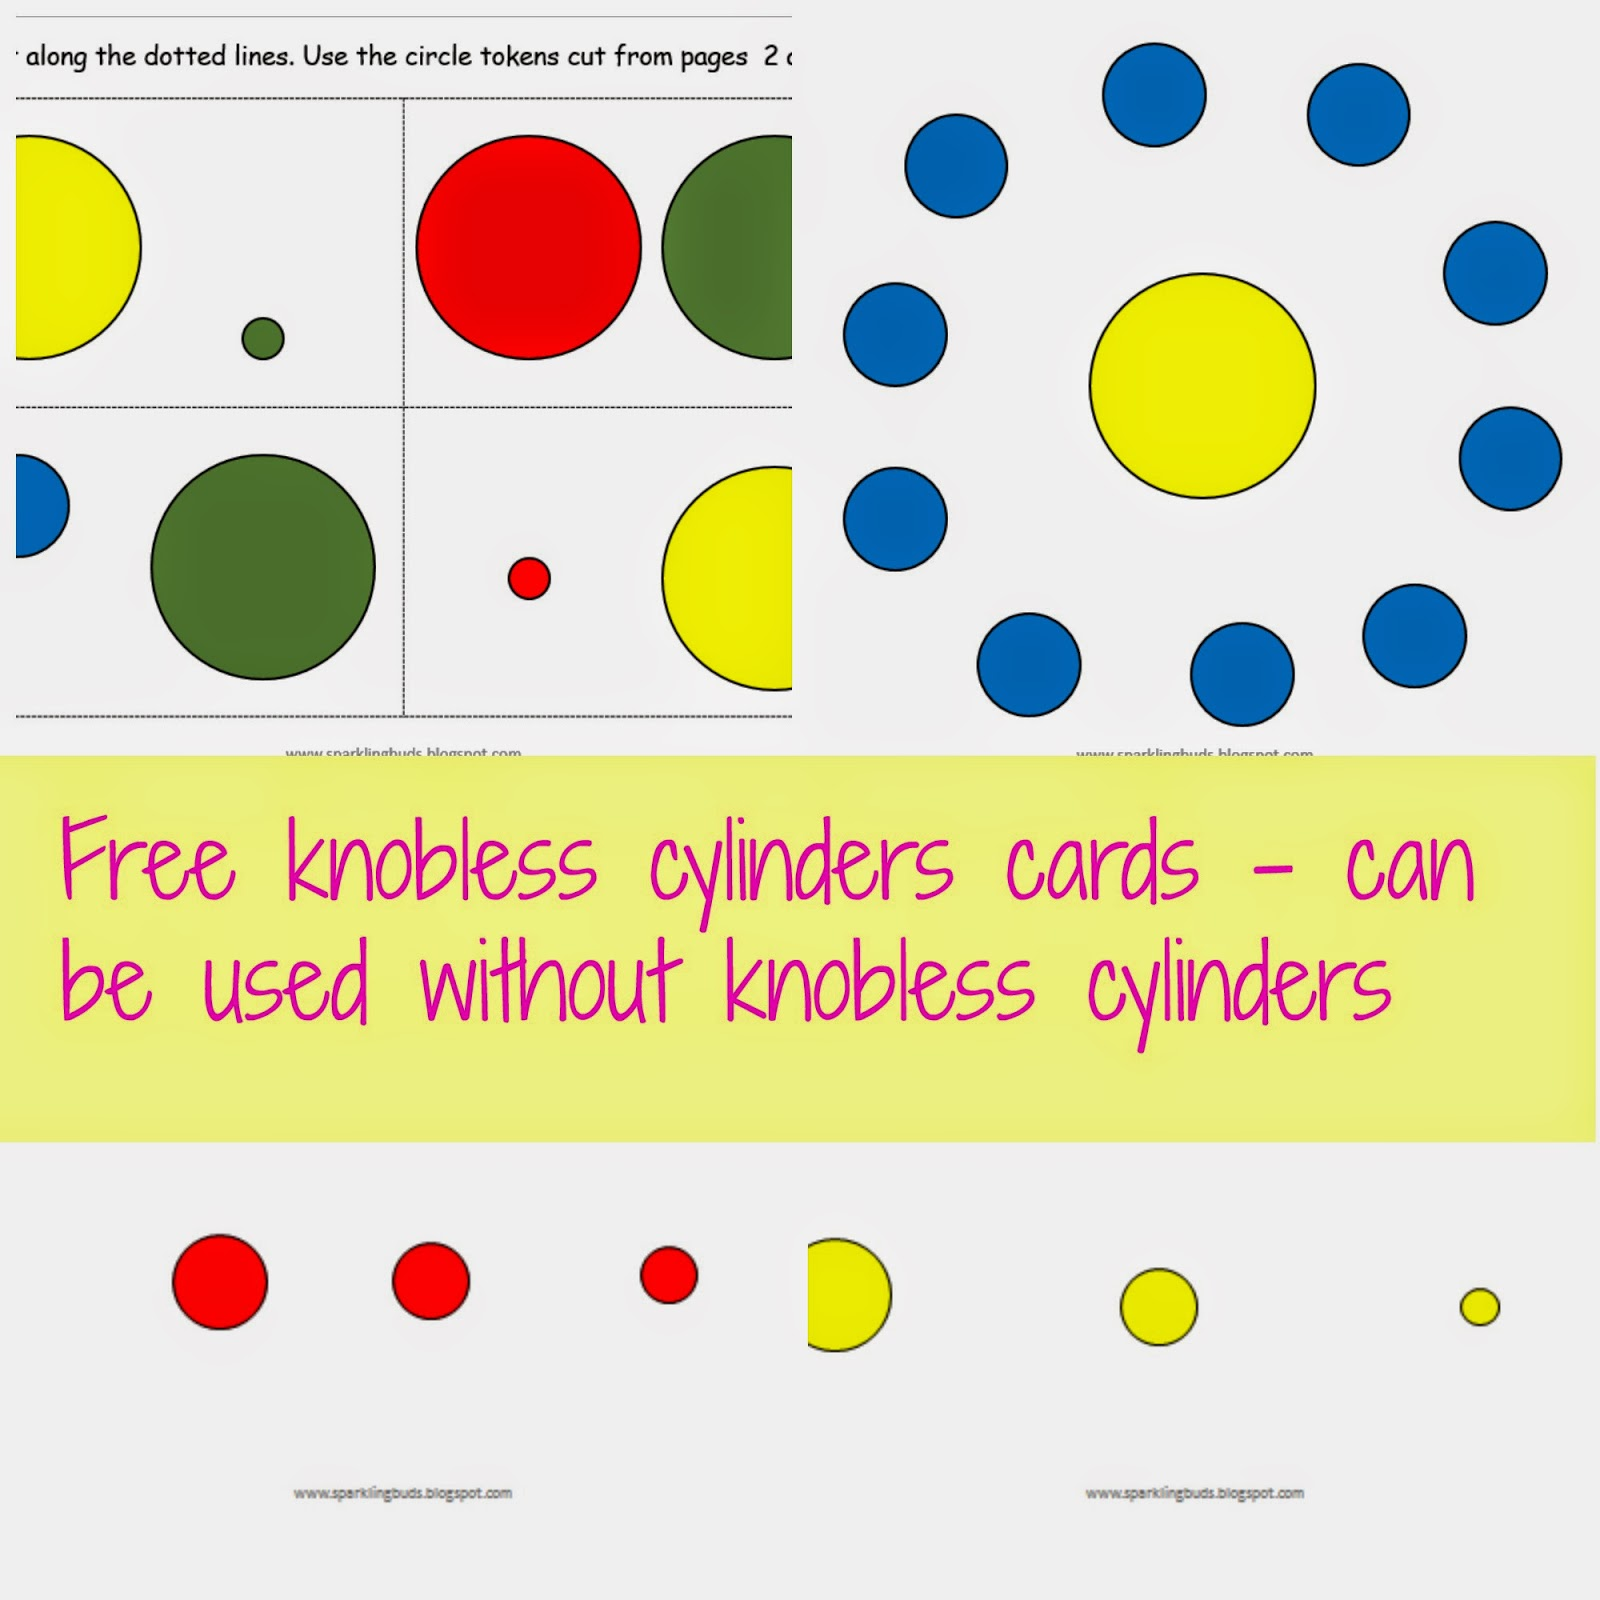 free knobless cylinders cards for toddlers sparklingbuds